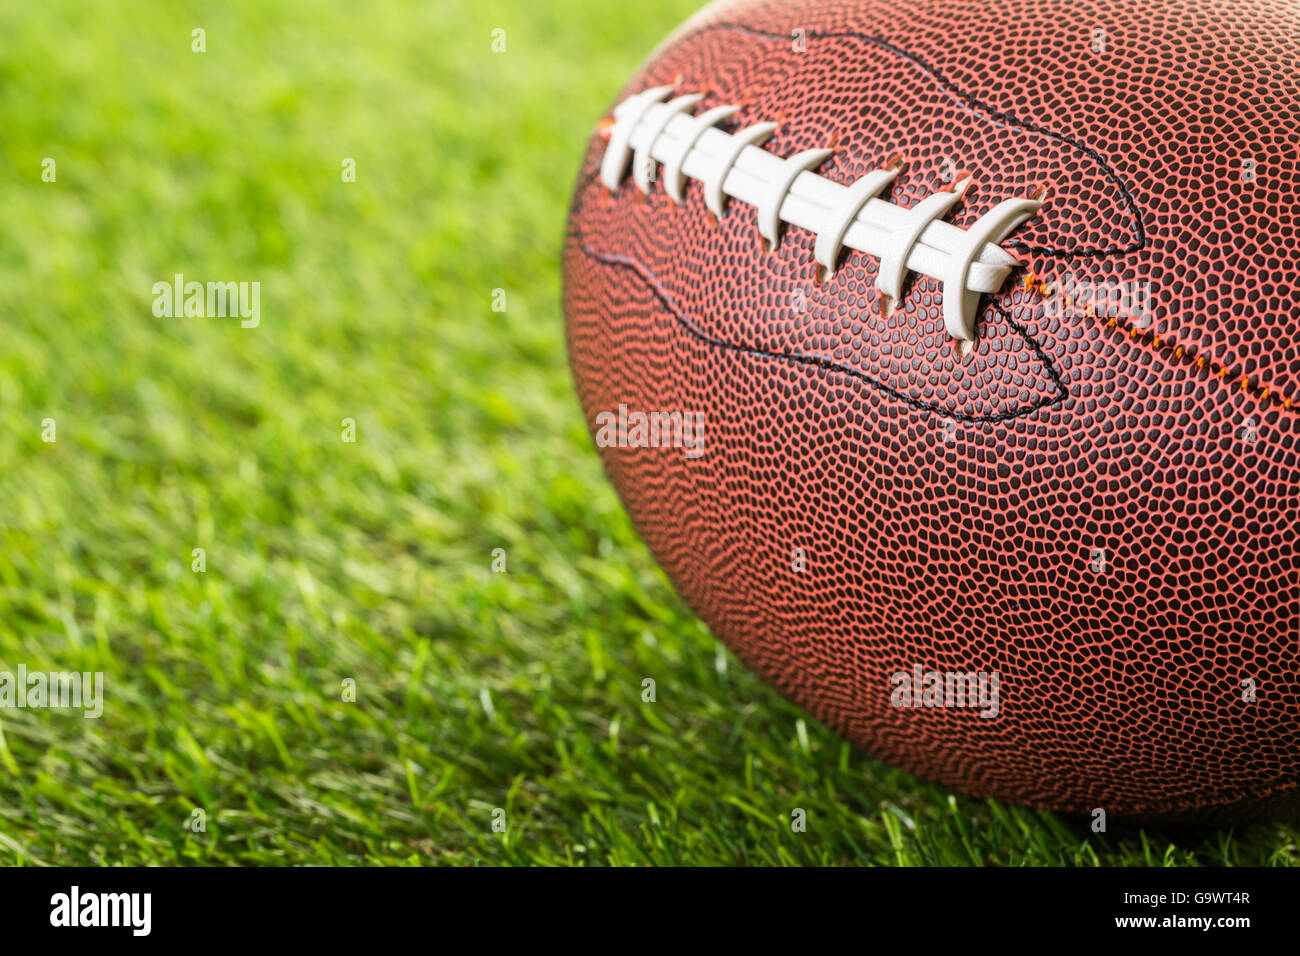 Il Football americano Close up sul prato verde. Immagini Stock